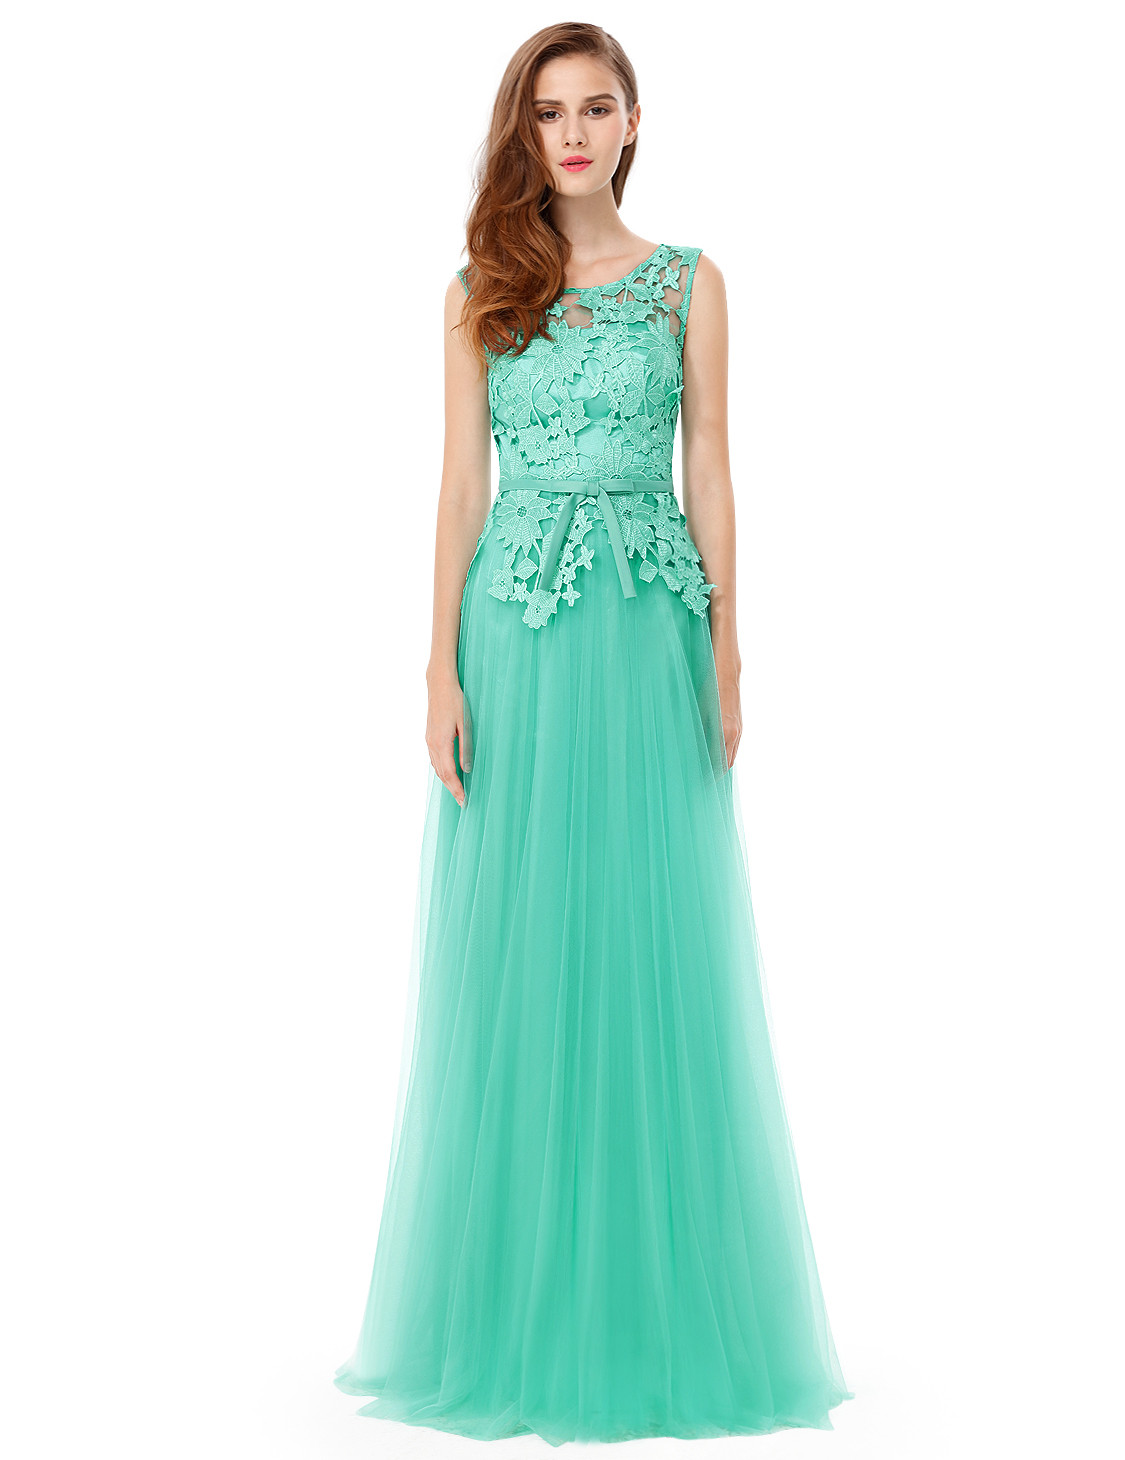 Elegant Light Green Round Neck Bridesmaids Dress